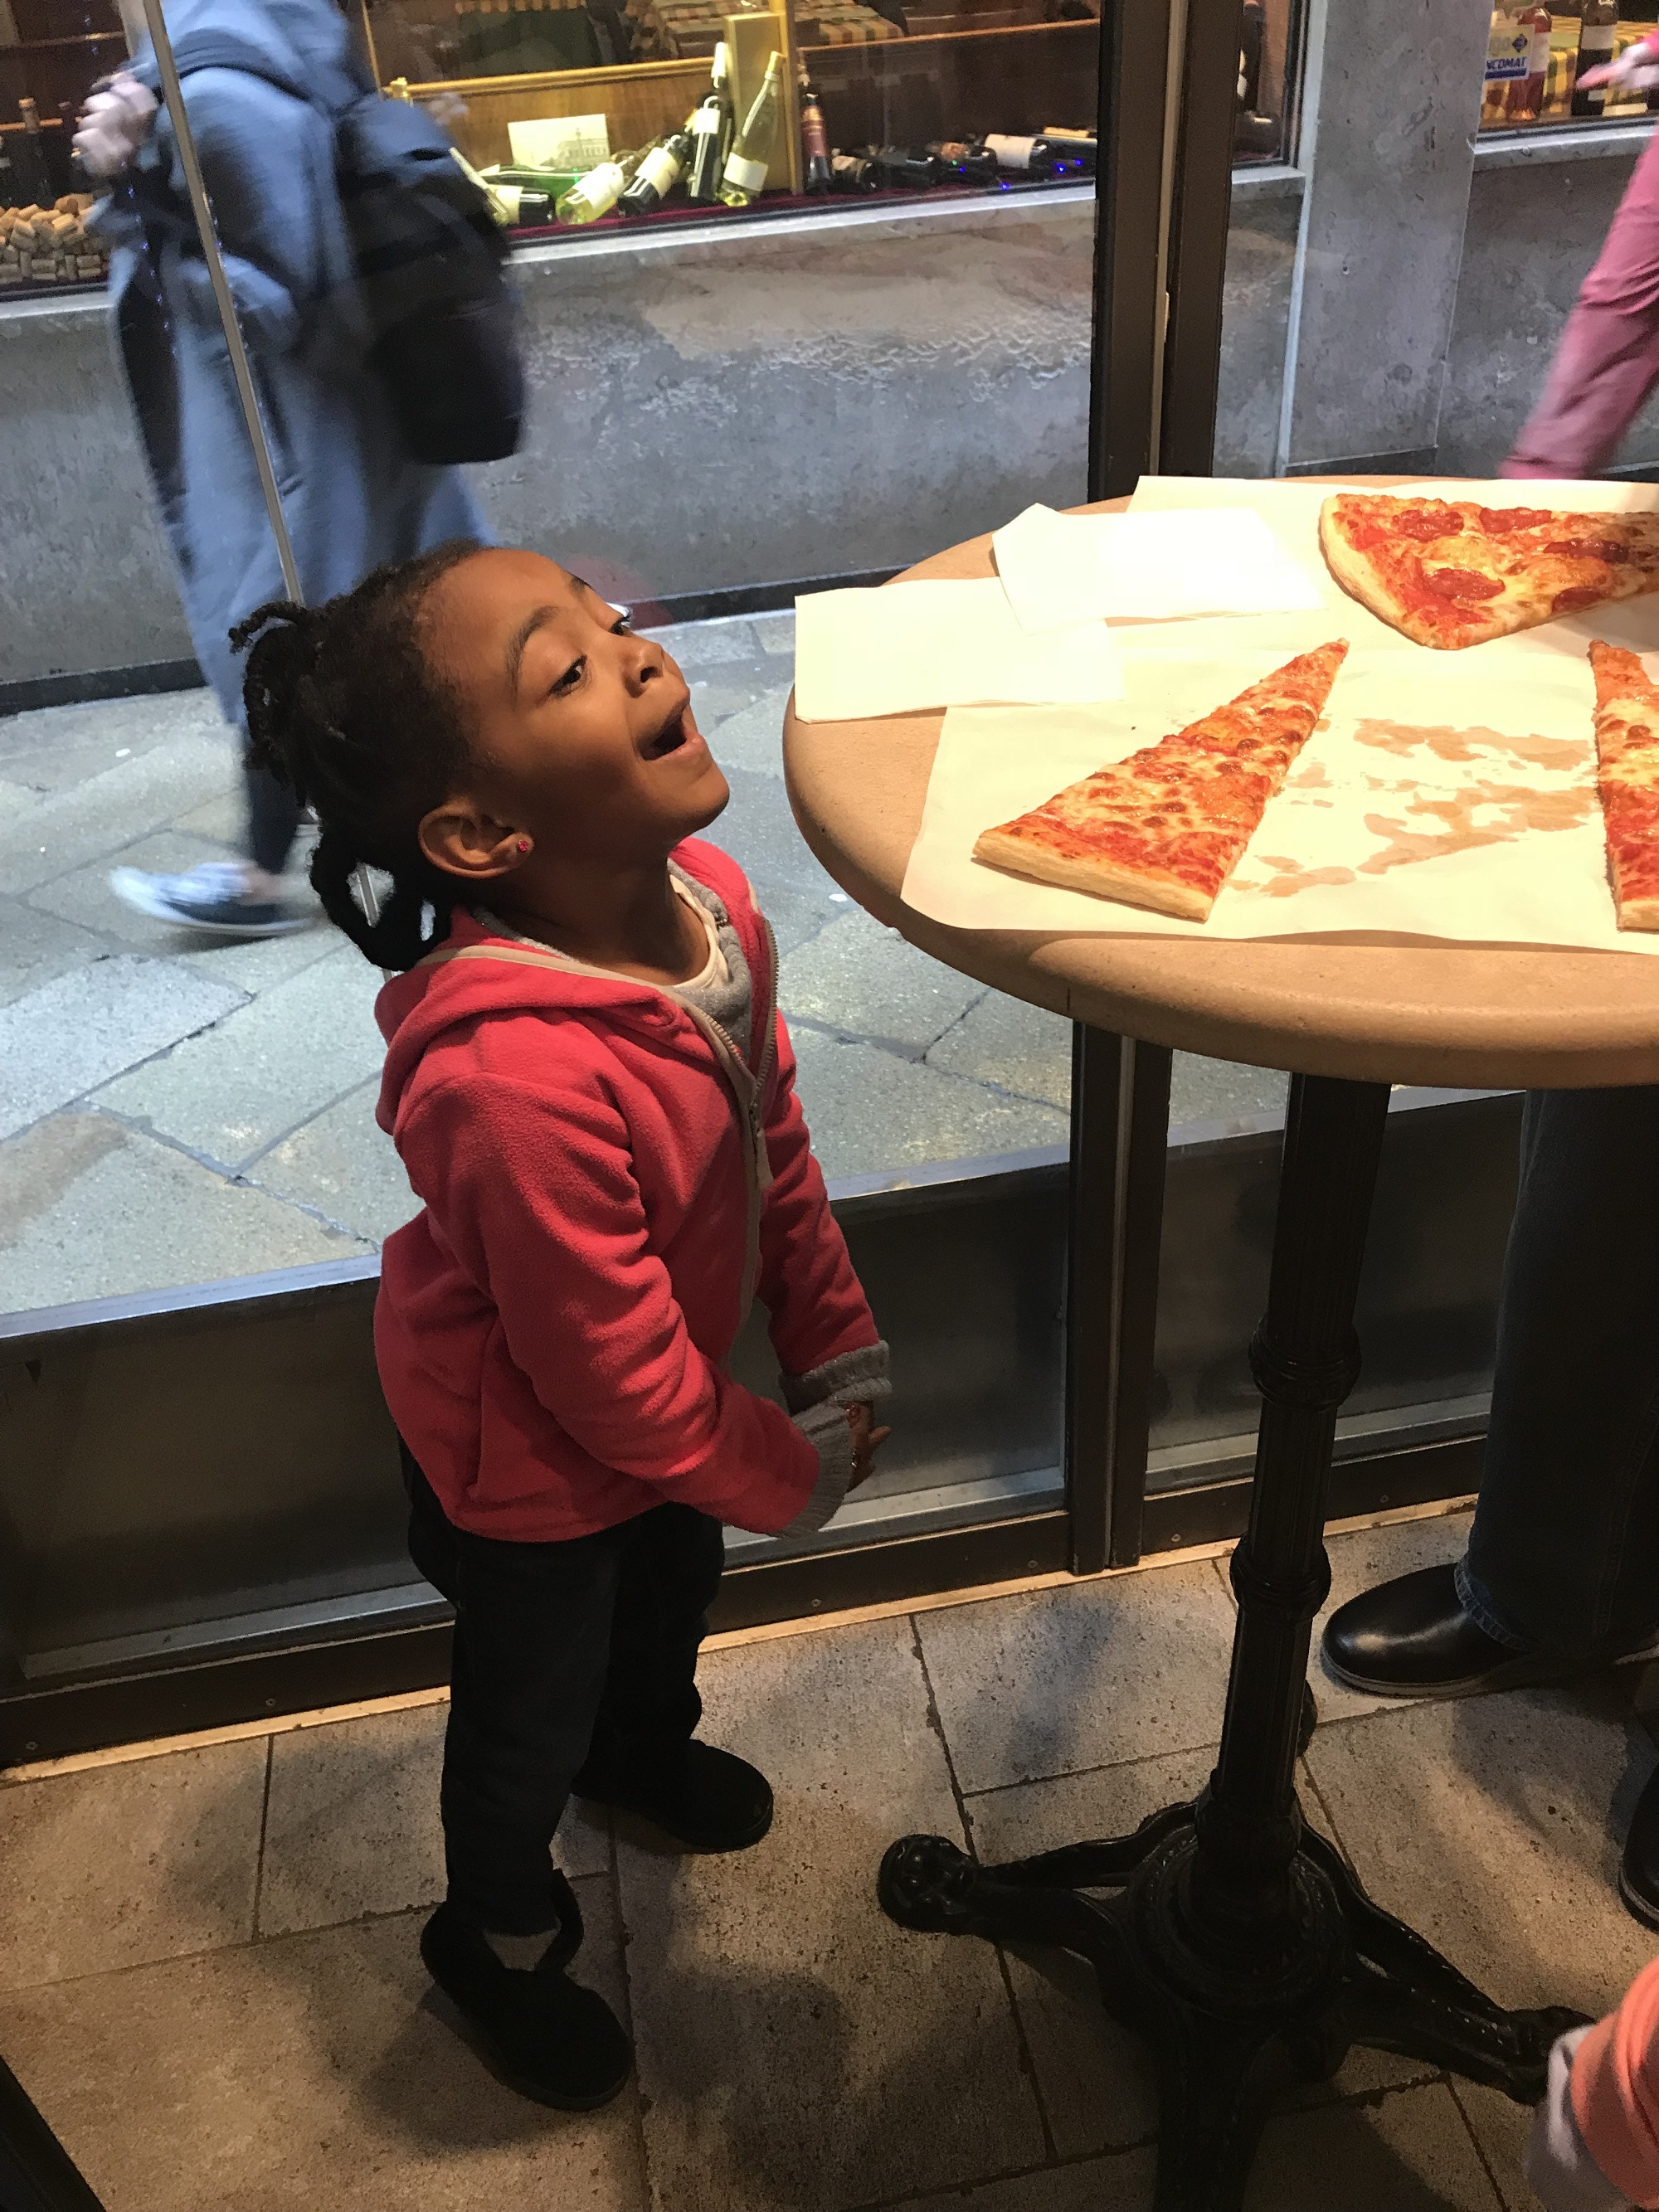 One of the Spring Break Family brood eyeing up some pizza on a table © the Spring Break Family